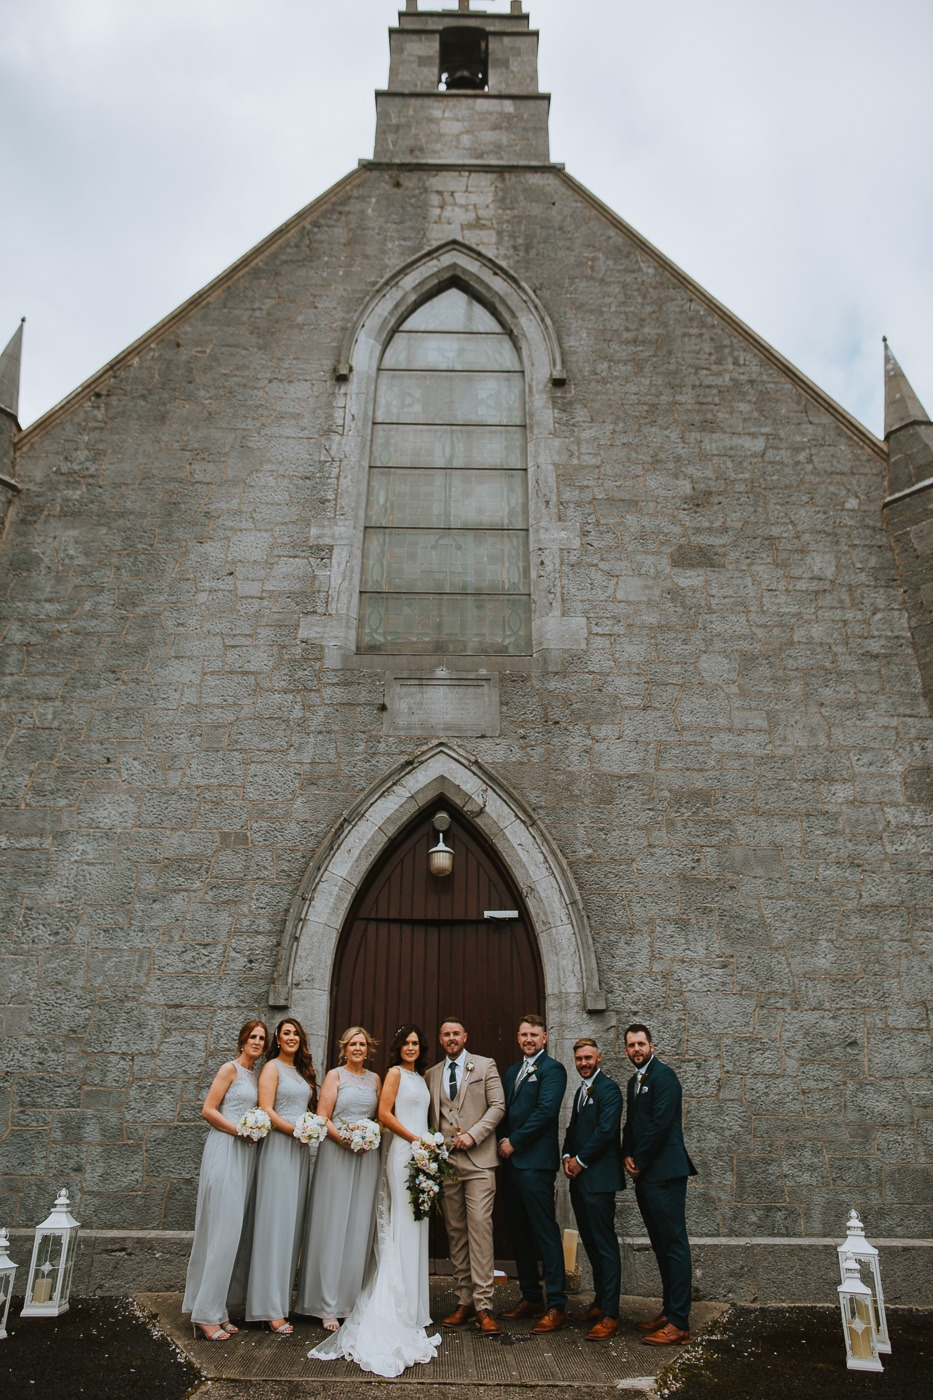 A group of people standing in front of a stone building